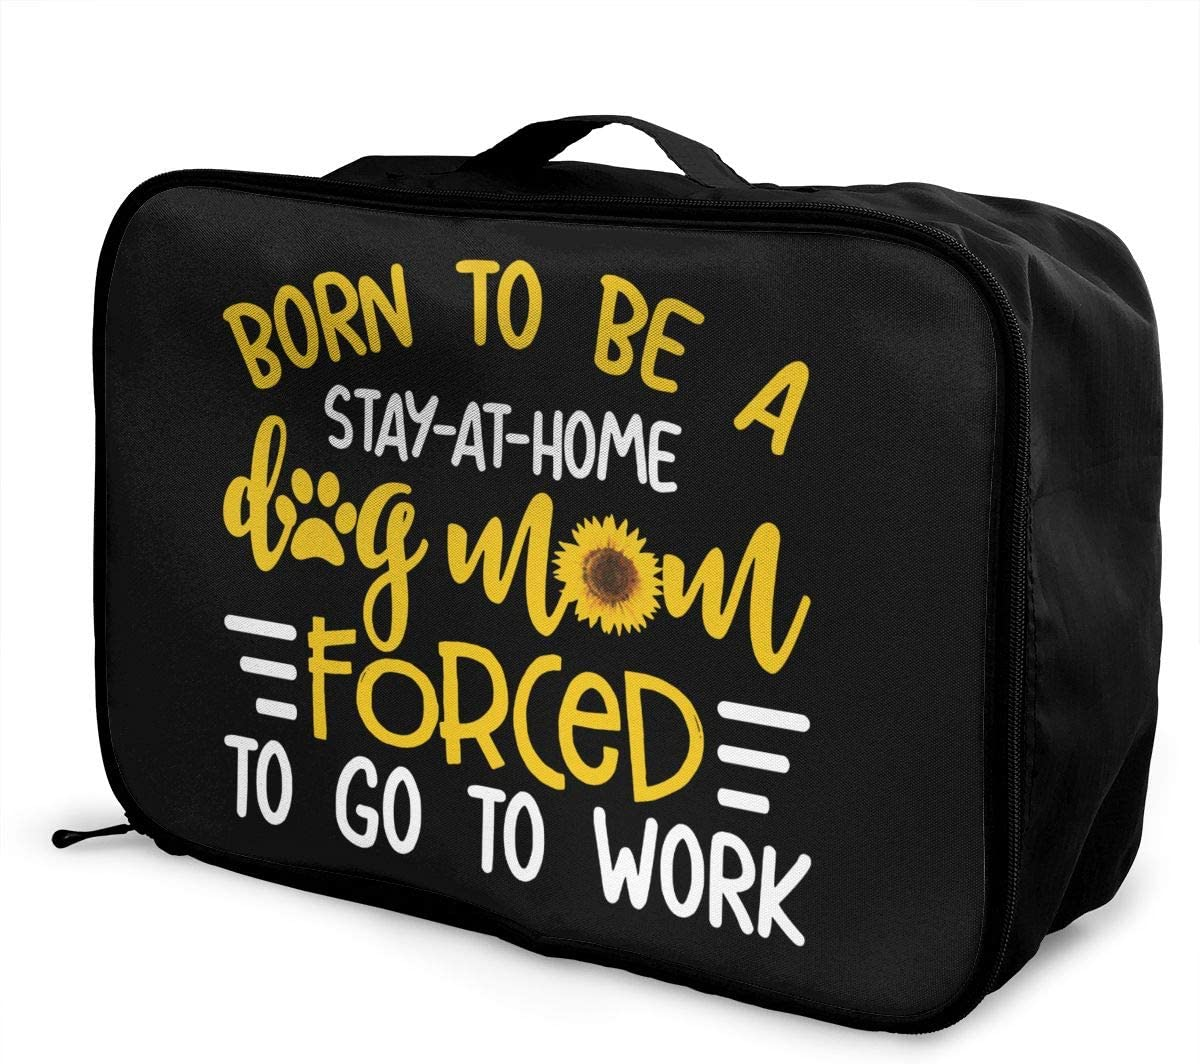 Born to Be A Stay at Home Dog Mom. Large Capacity Duffel Bag Travel Storage Luggage Trolley Bag